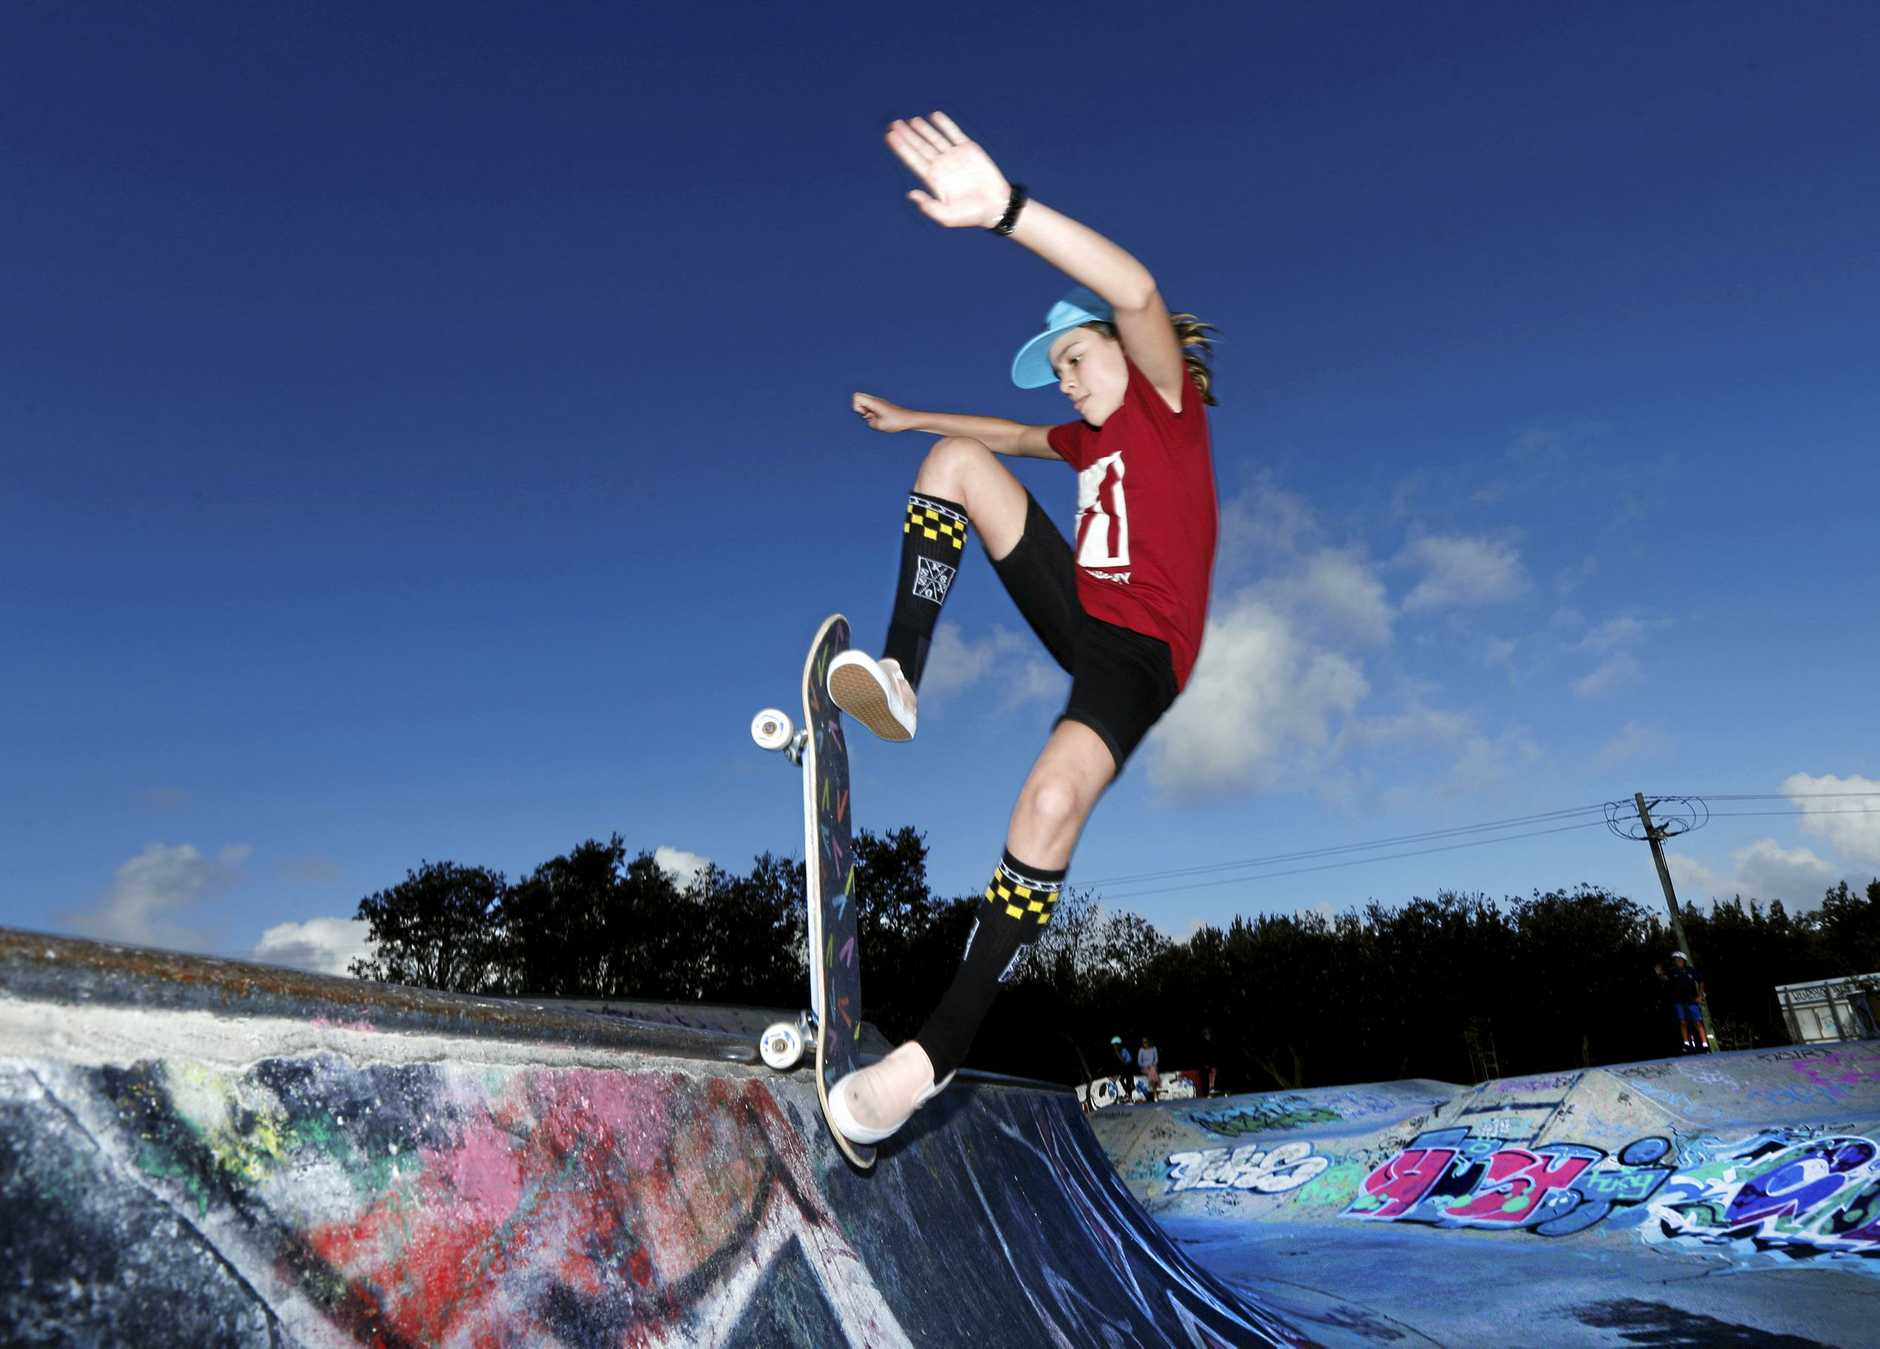 Tweed Coast skater girl Indi is a skating legend and about to embark on a USA trip to meet her sponsors and compete.